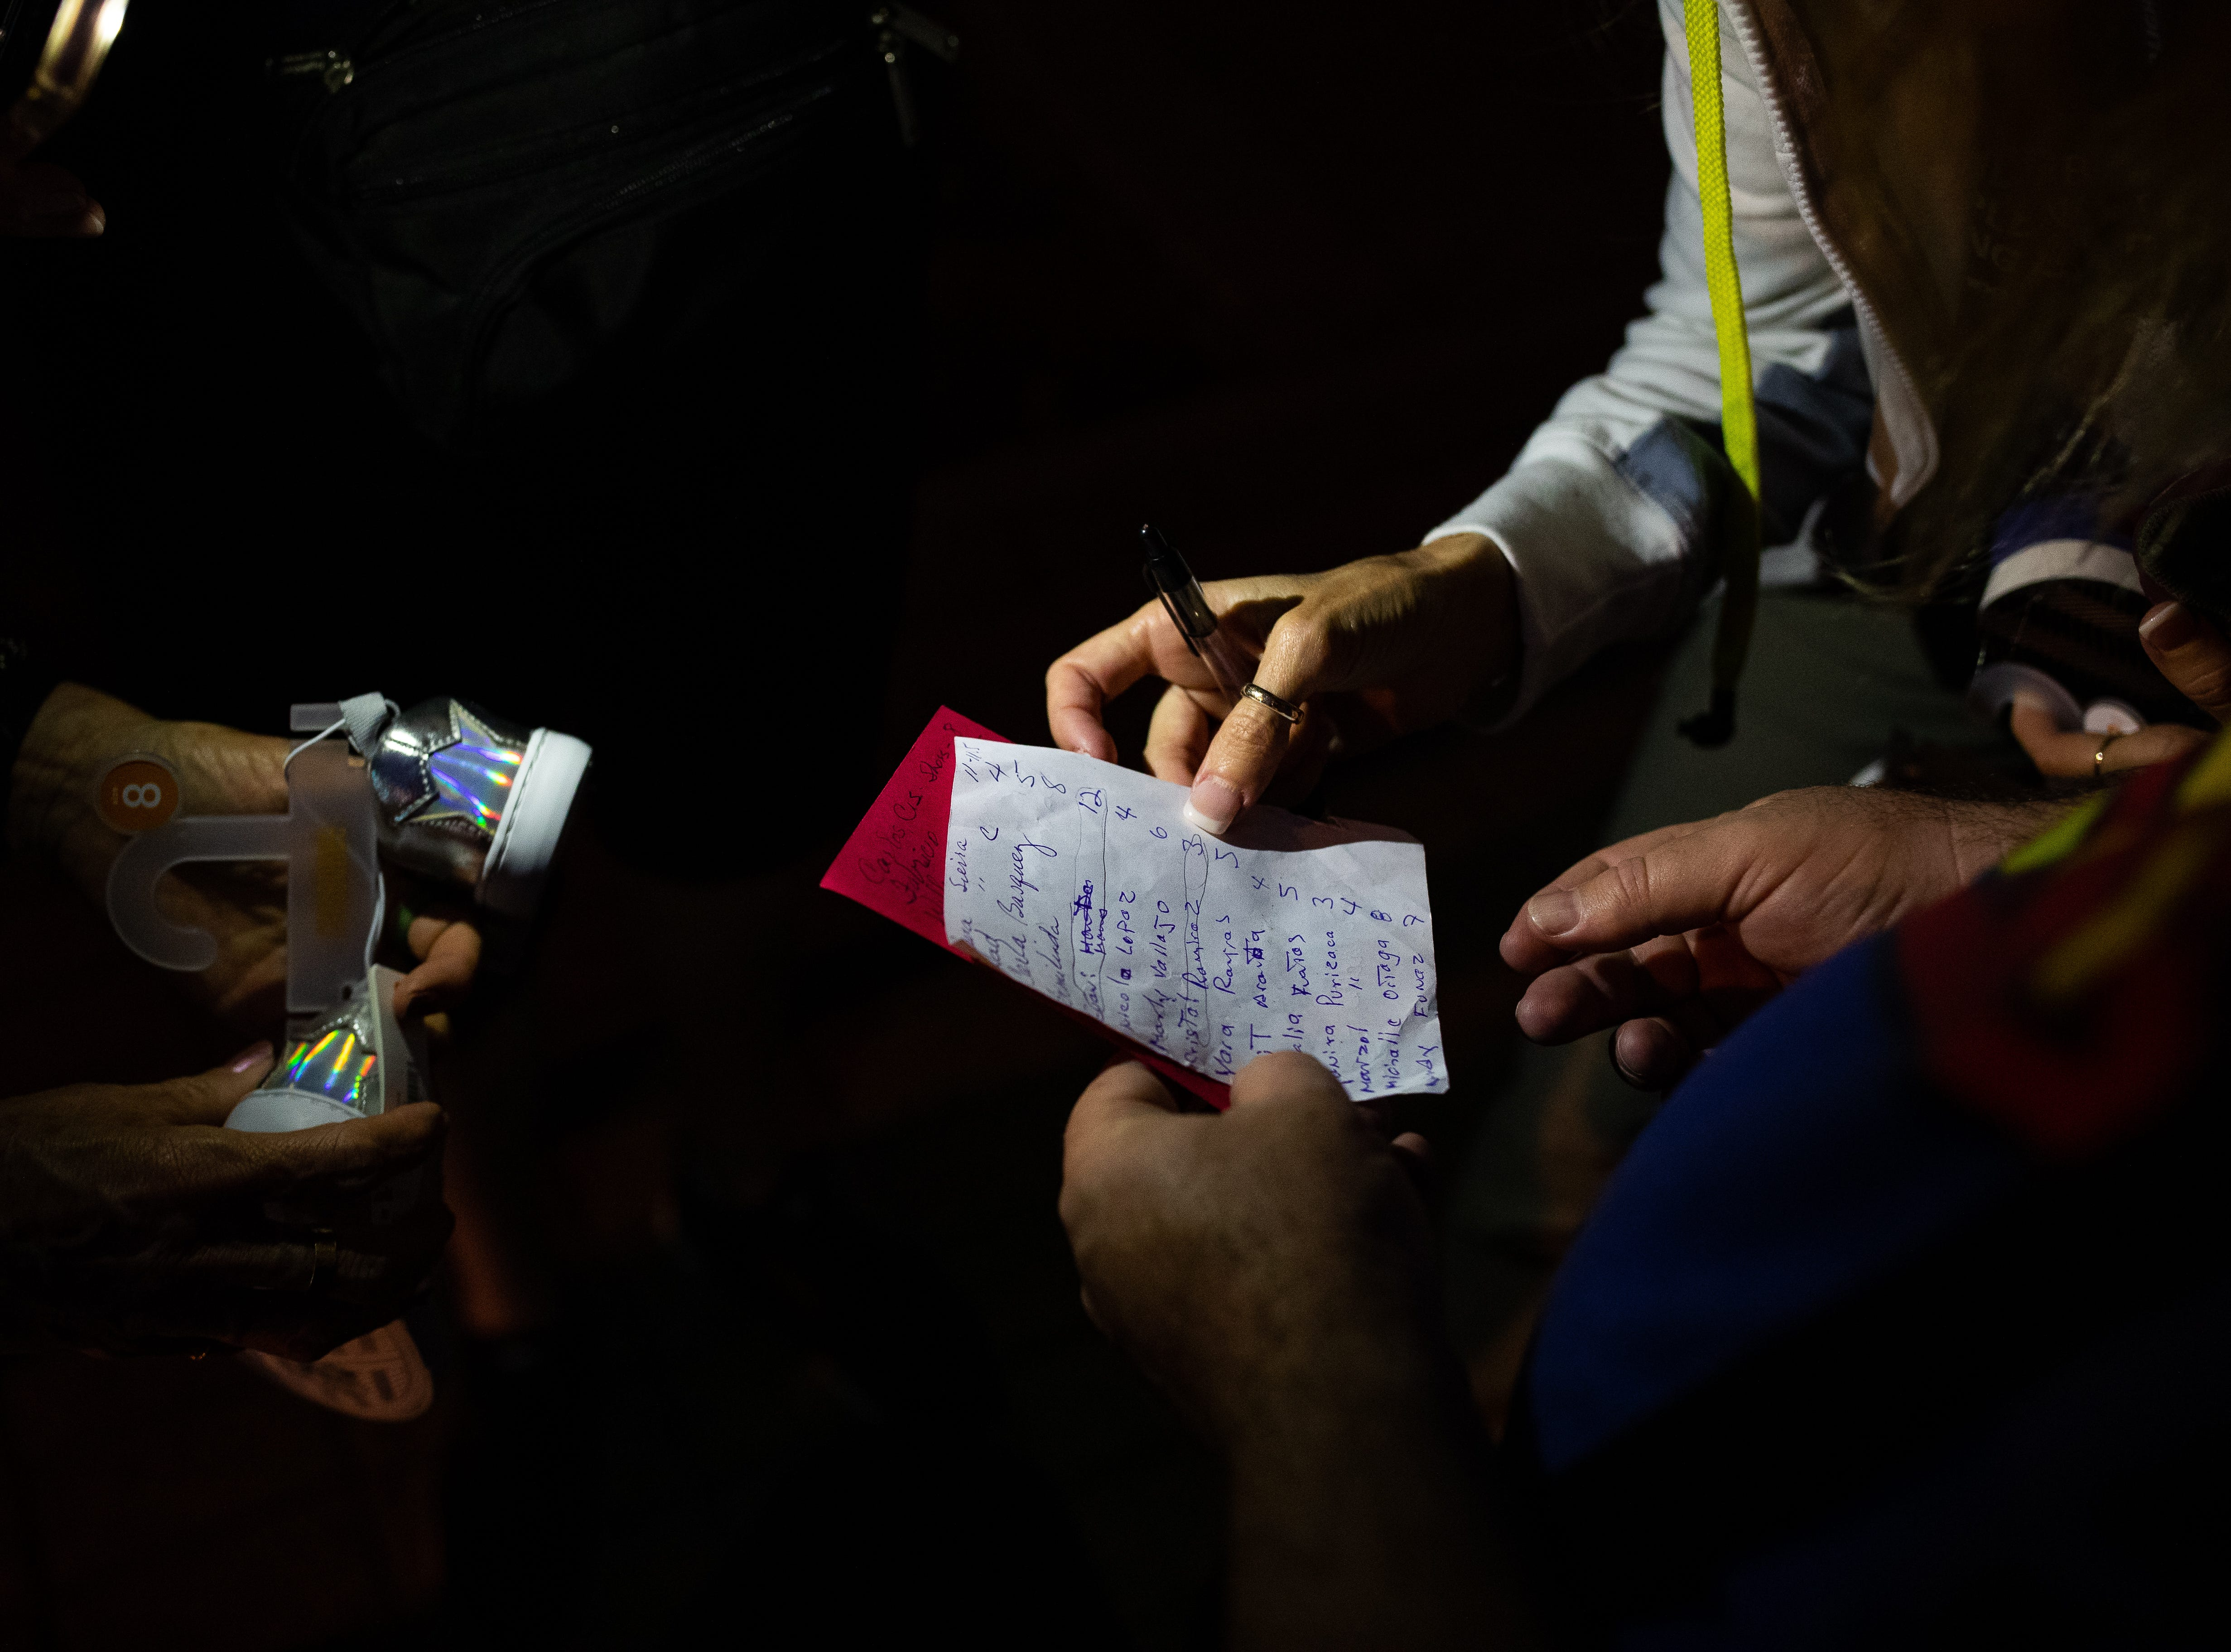 Team Brownsville volunteers Emmett Blake, Diane Beckman, Anne Rioux and Ann Finch of Austin use a cellphone light to read a list of shoes sizes needed for migrants before crossing the Gateway International Bridge to serve breakfast  in Matamoros Mexico on Friday, April 5, 2019.